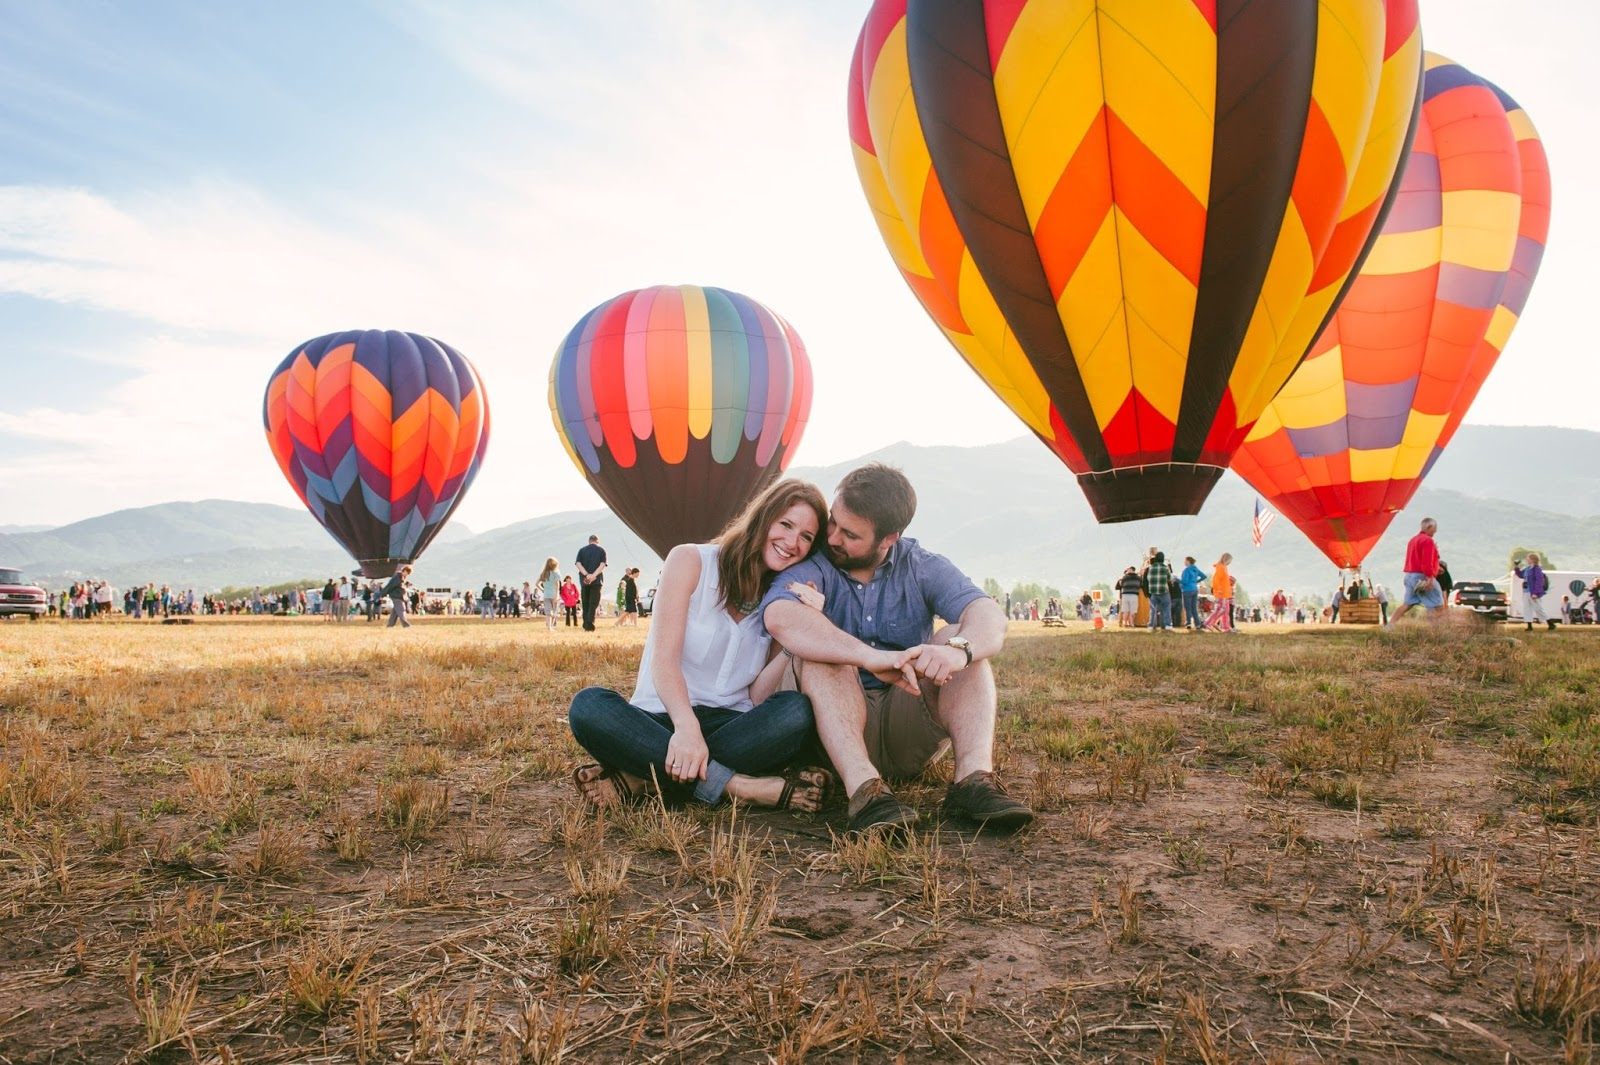 A couple sit on a grassy open field and watch hot air balloons take off from the ground.